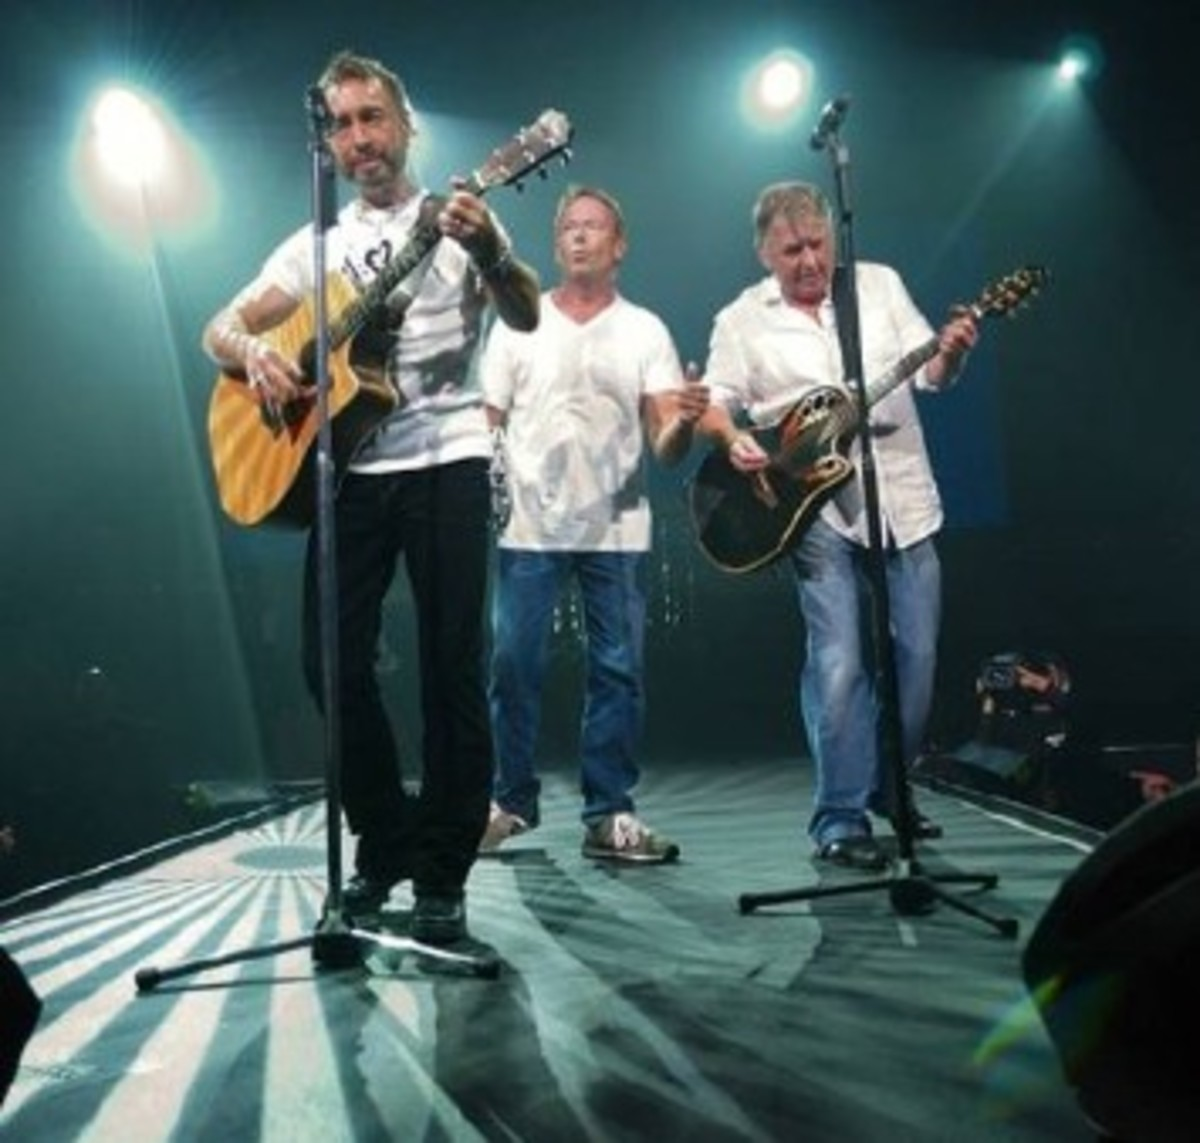 Bad Company reunited and performed before a sold-out crowd in Florida on Aug. 8, 2008. Photo: Bad Company.